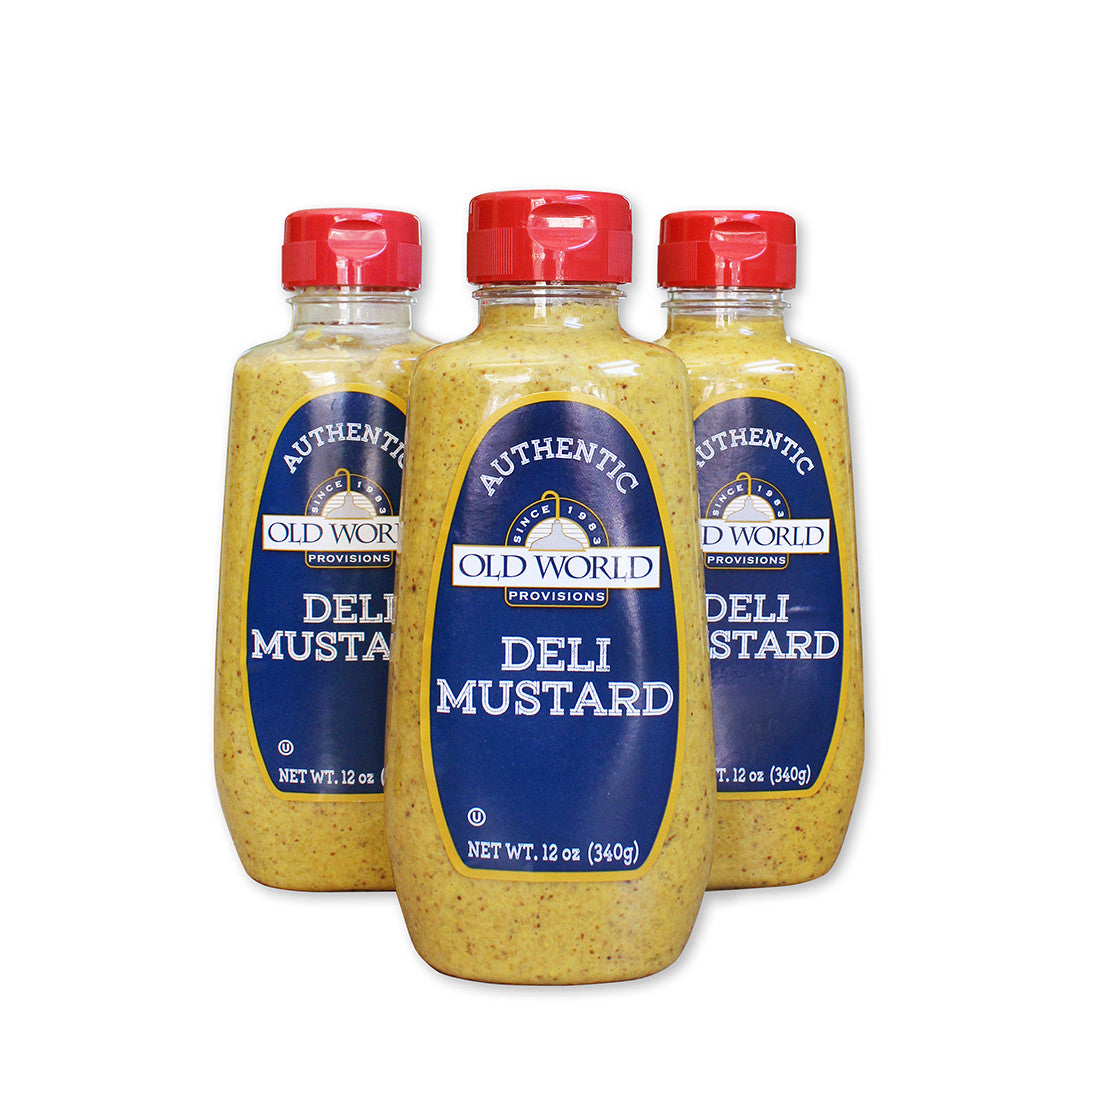 Old World Provisions Authentic Deli Mustard is the real New York Deli style spicy brown mustard.